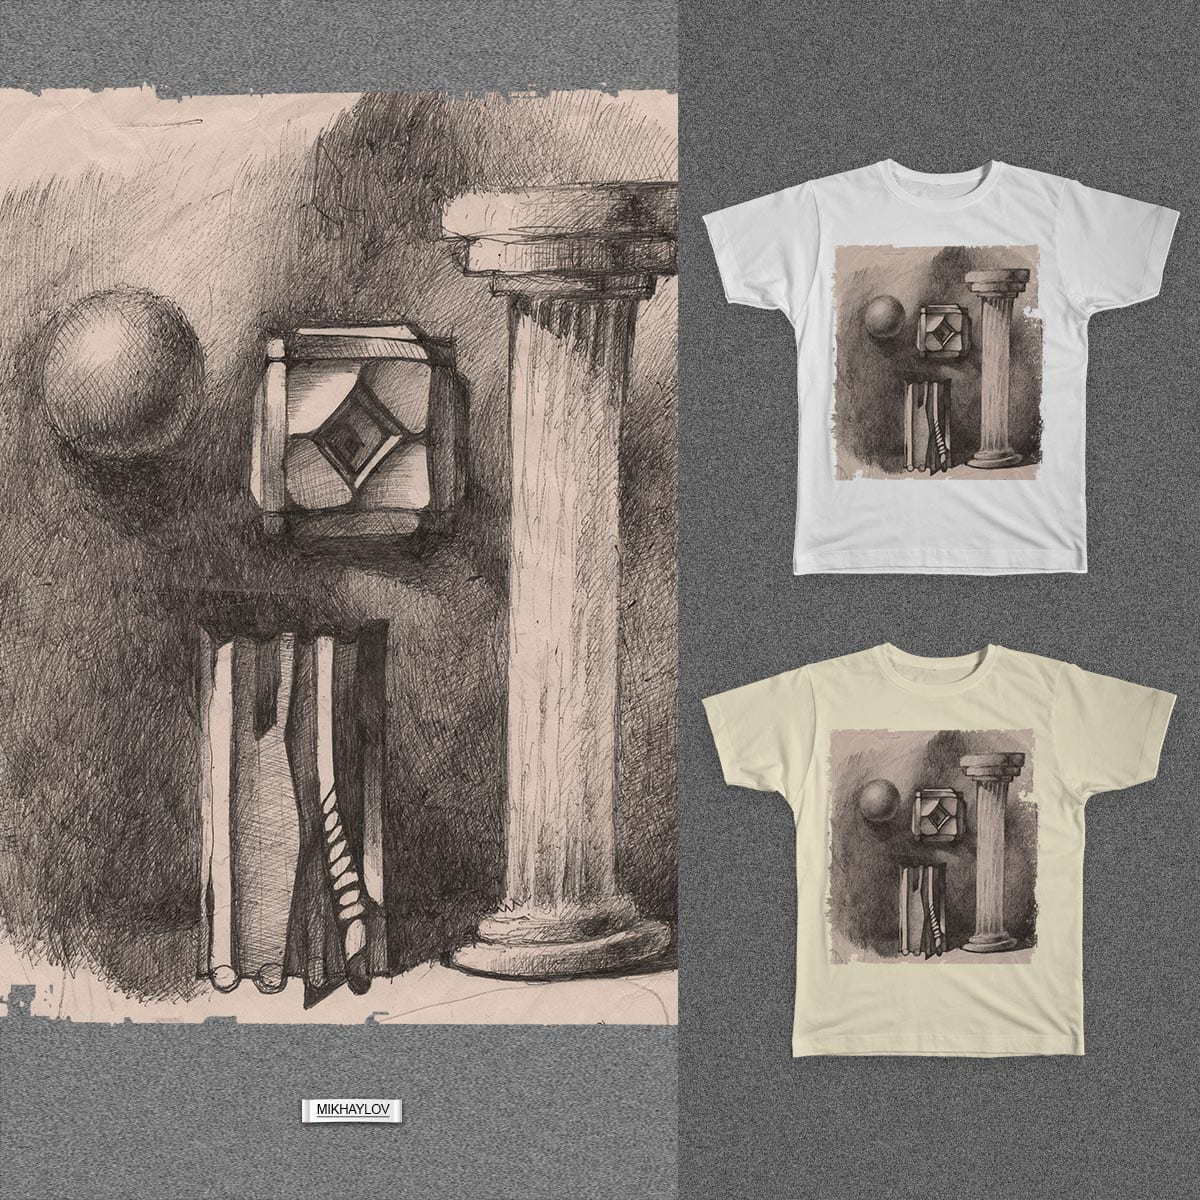 syurializm by MIKHAYLOV on Threadless